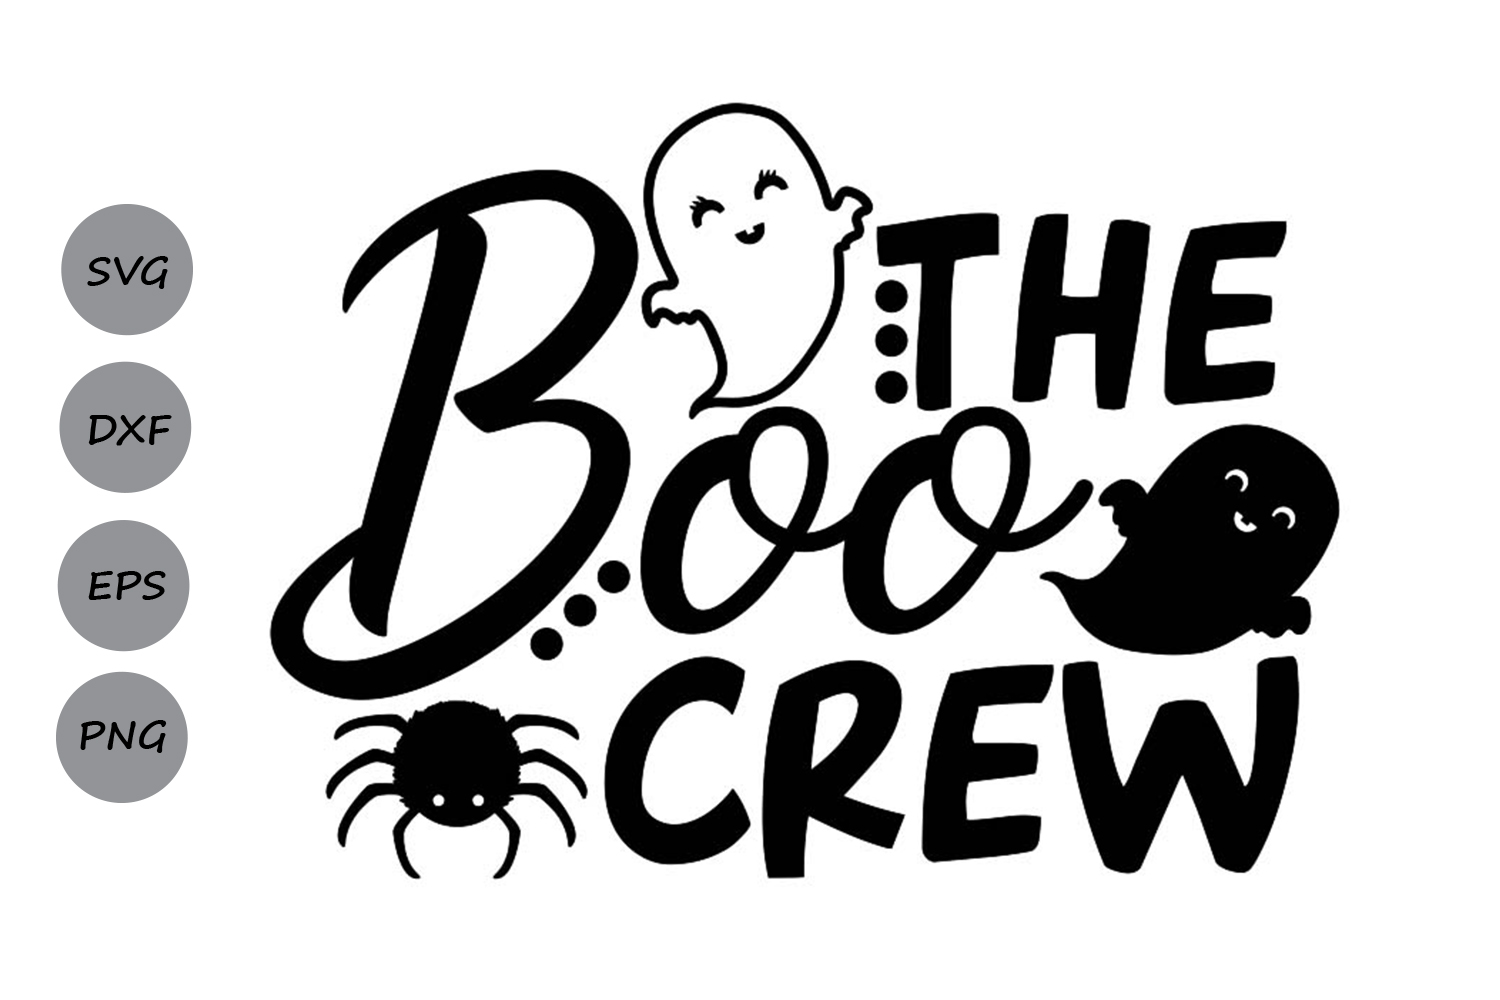 Download Free The Boo Crew Graphic By Cosmosfineart Creative Fabrica for Cricut Explore, Silhouette and other cutting machines.